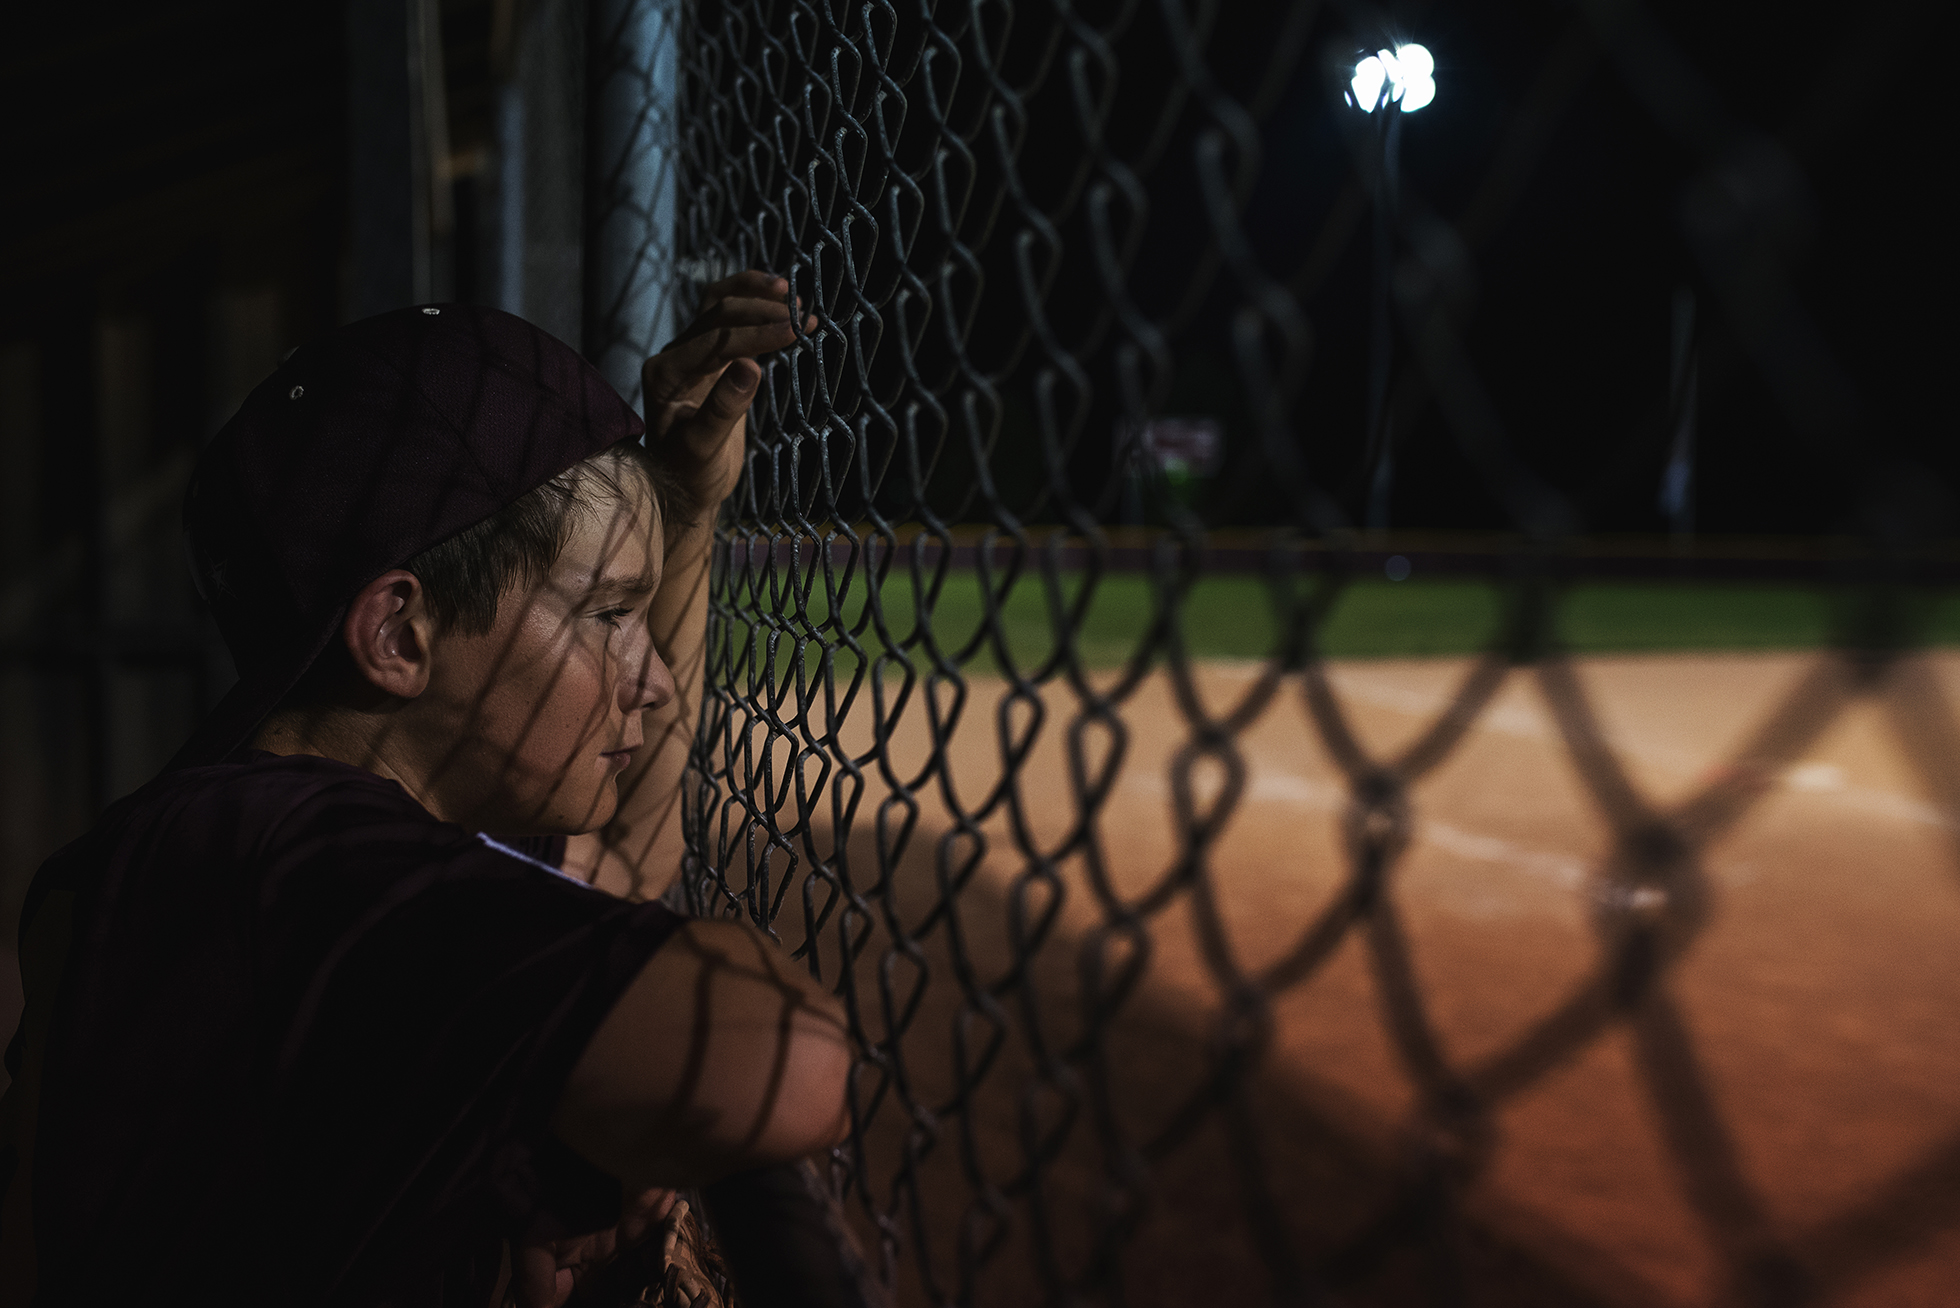 photographing kids sports boy at fence in dugout watching night game by kellie bieser